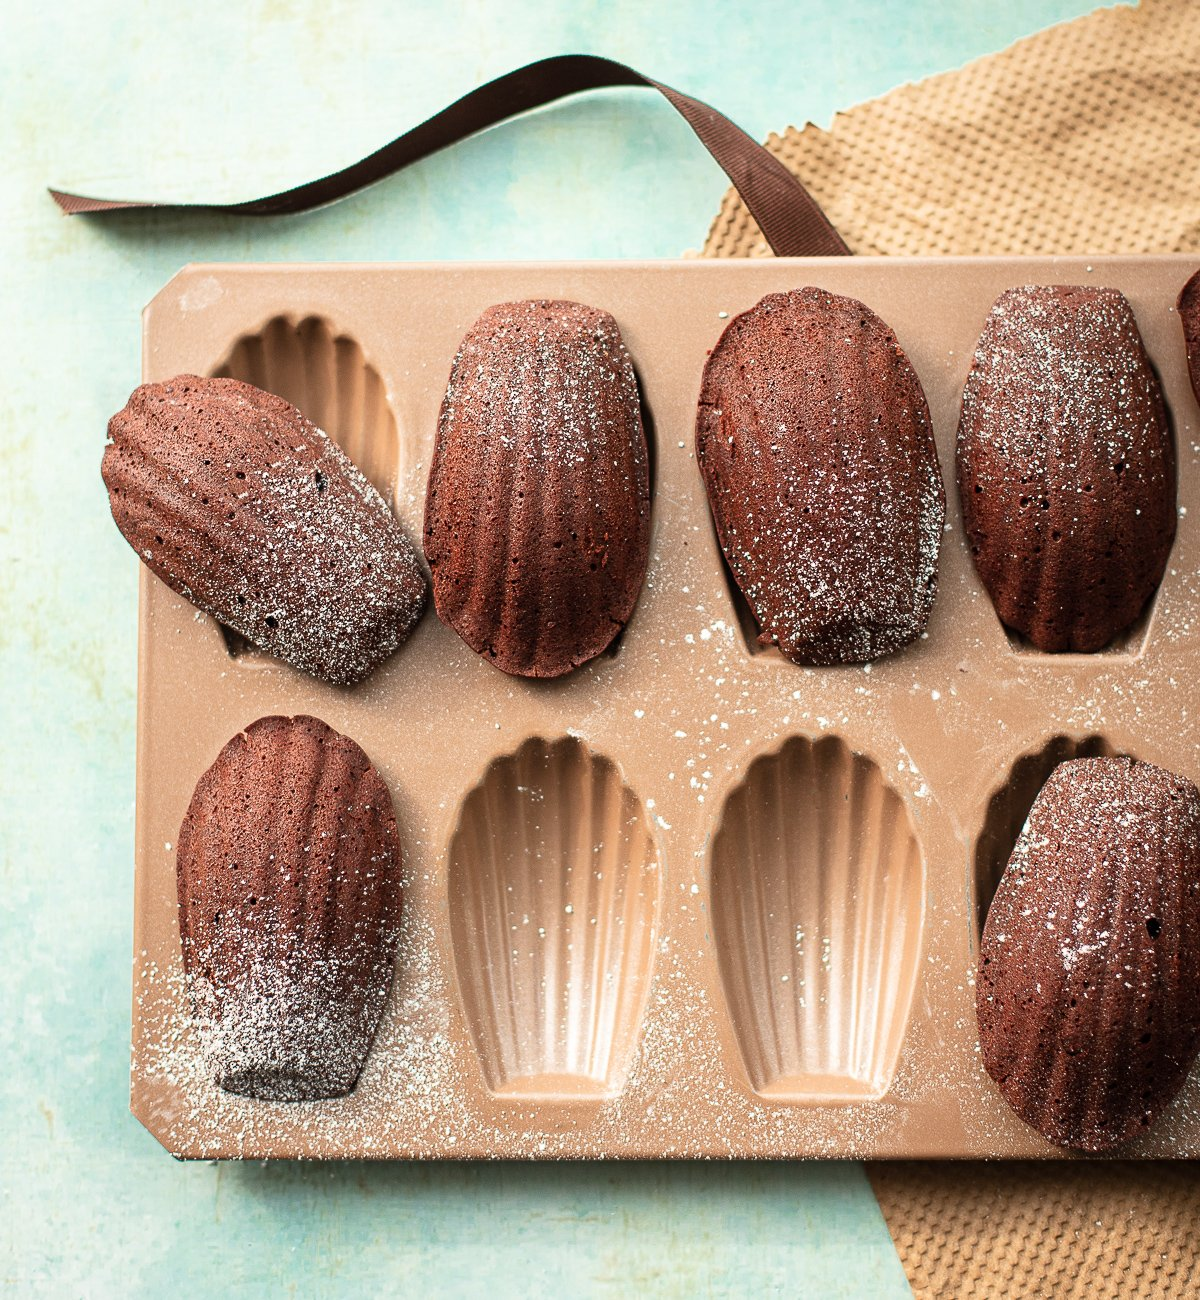 A image of baked chocolate madeleine cakes arranged in a madeleine baking pan.